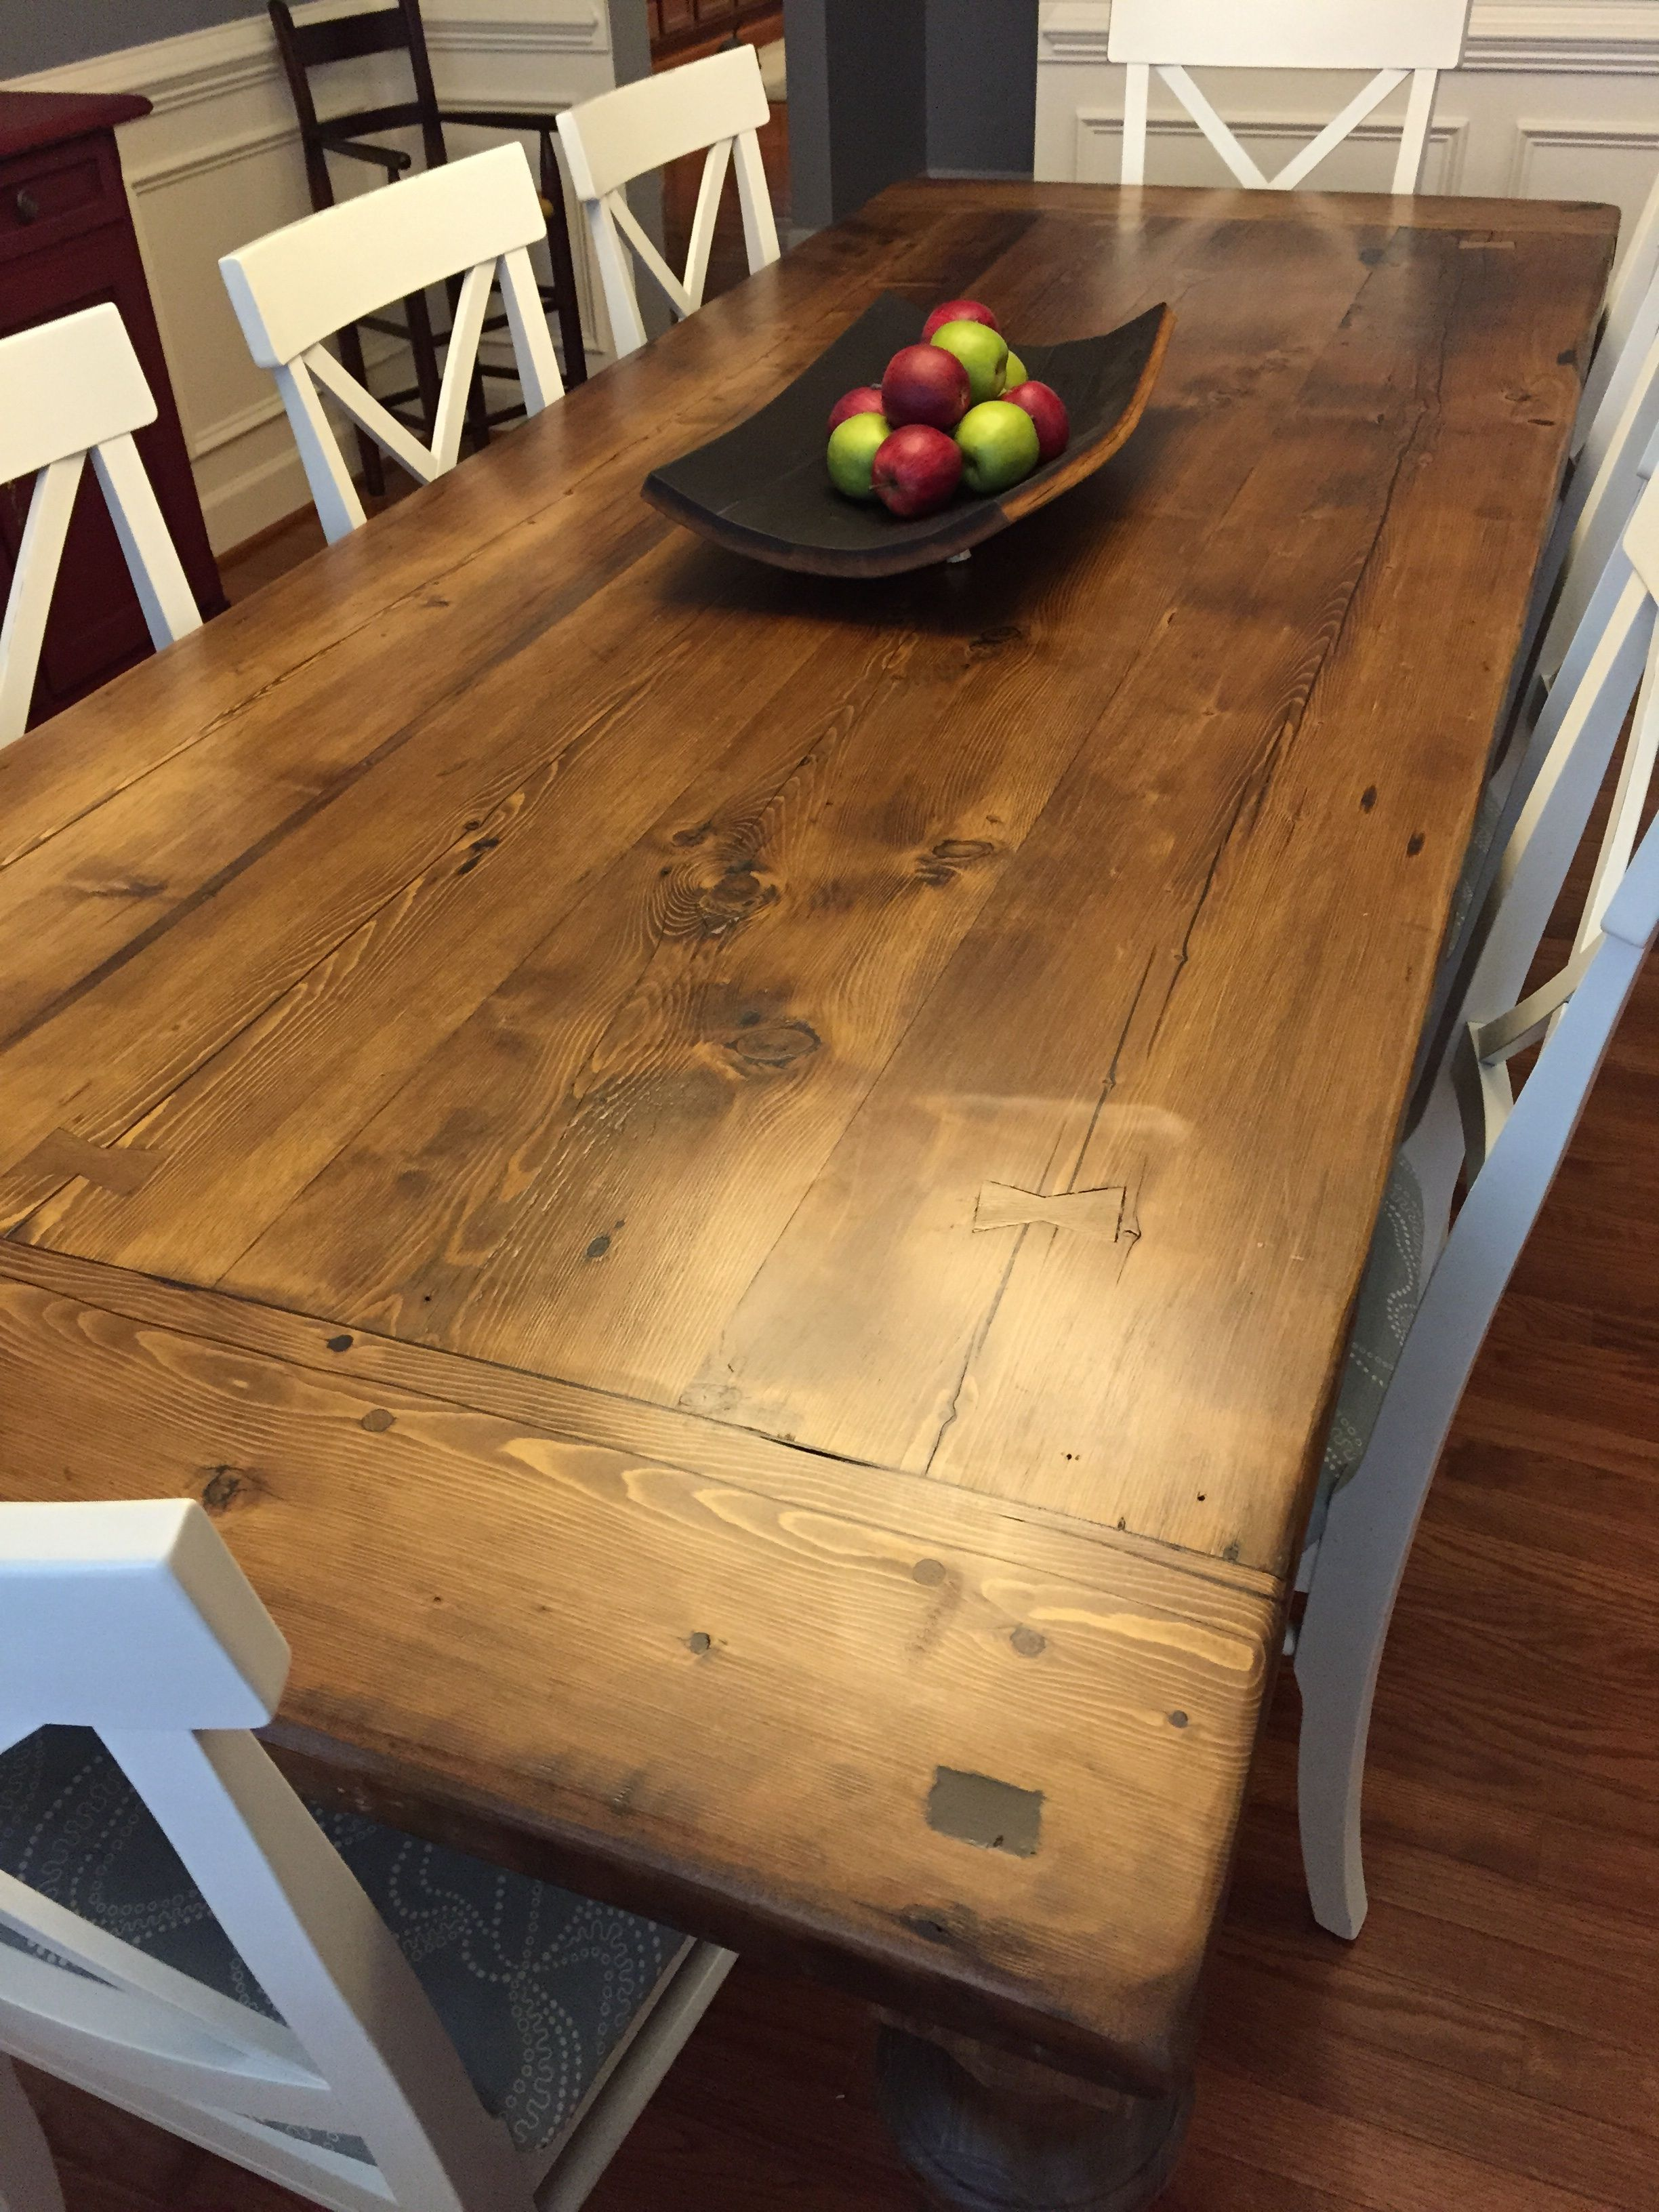 Reclaimed Wood Dining Table With A Thick Plank Top Breadboards - Refurbished wood dining room table